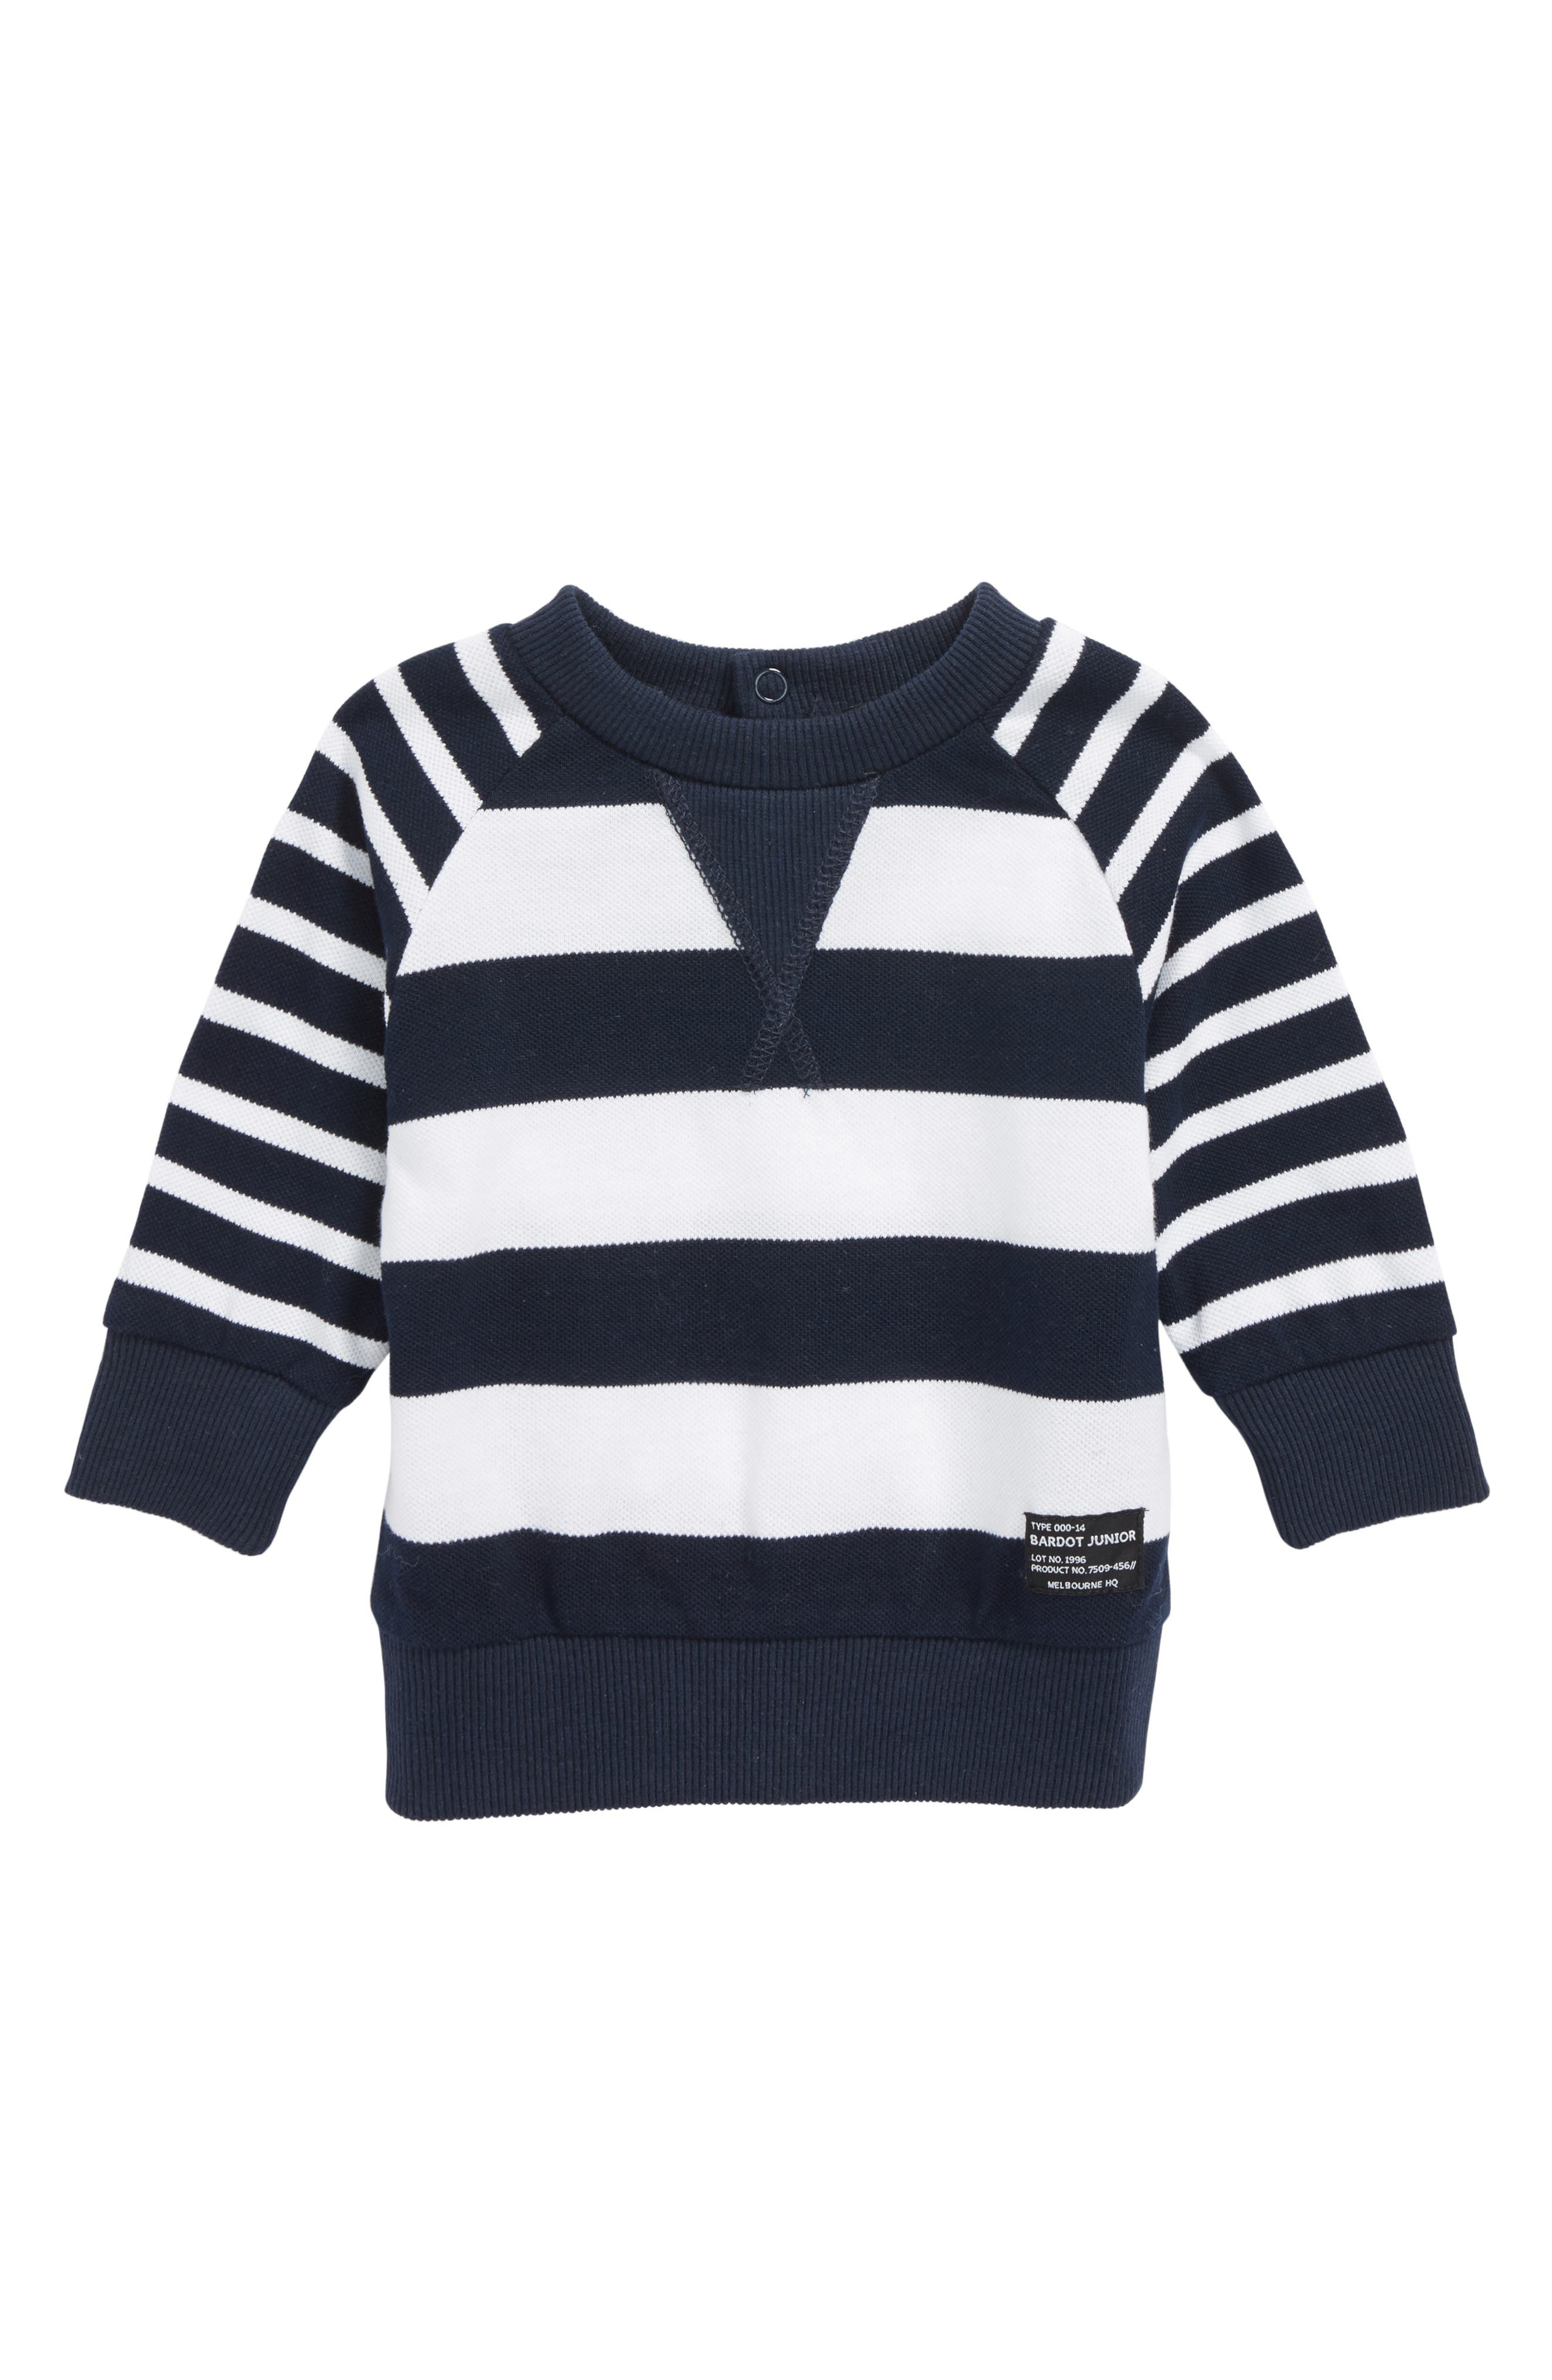 Stripe Sweater,                         Main,                         color, Navy/ White